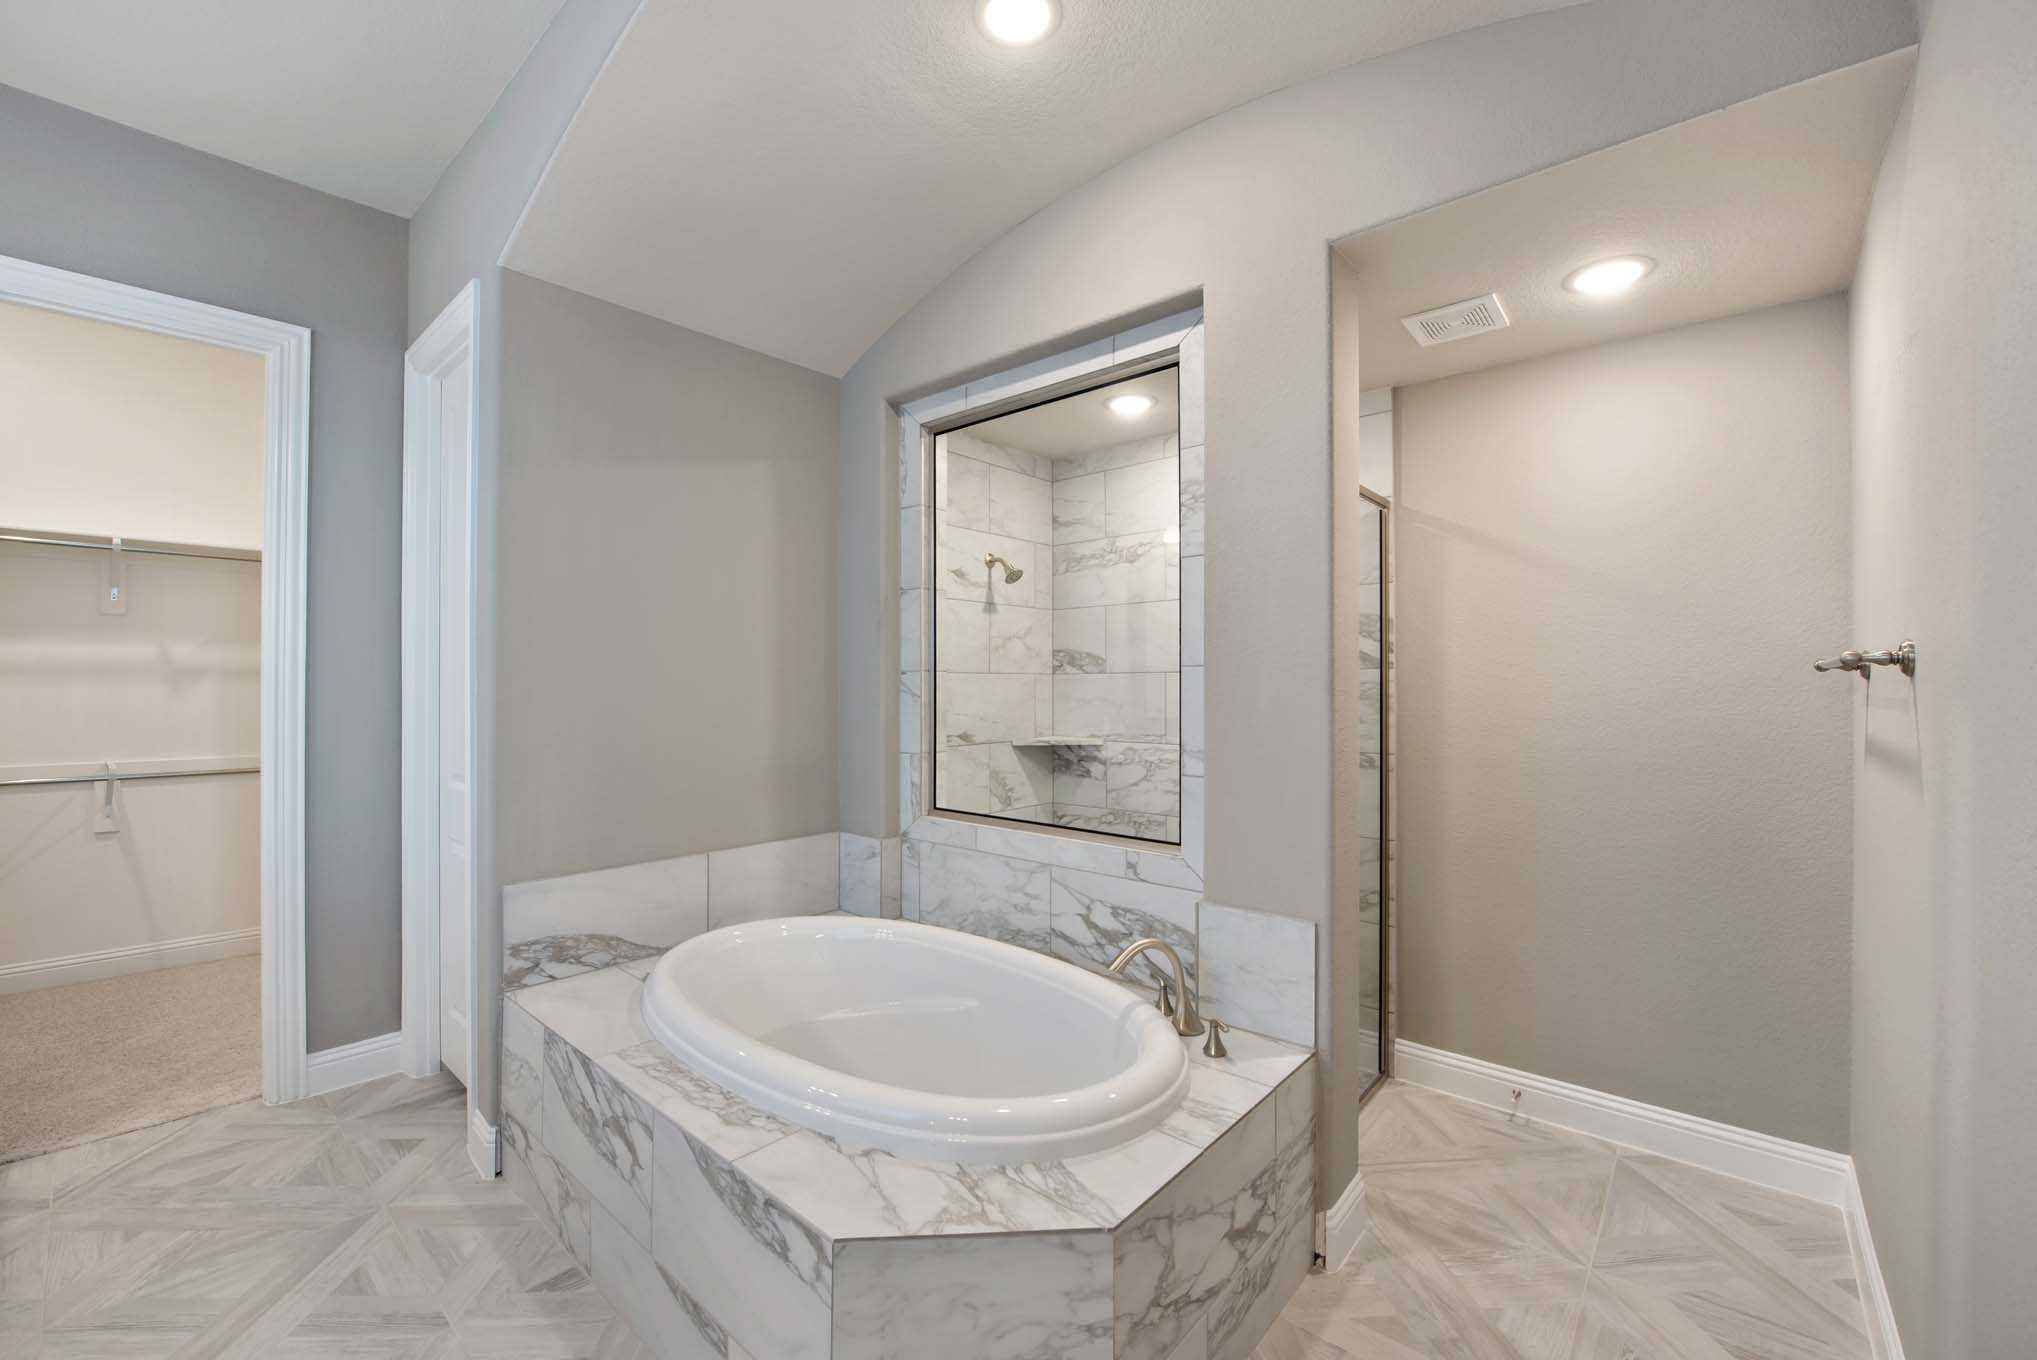 Bathroom featured in the Plan 224 By Highland Homes in Austin, TX